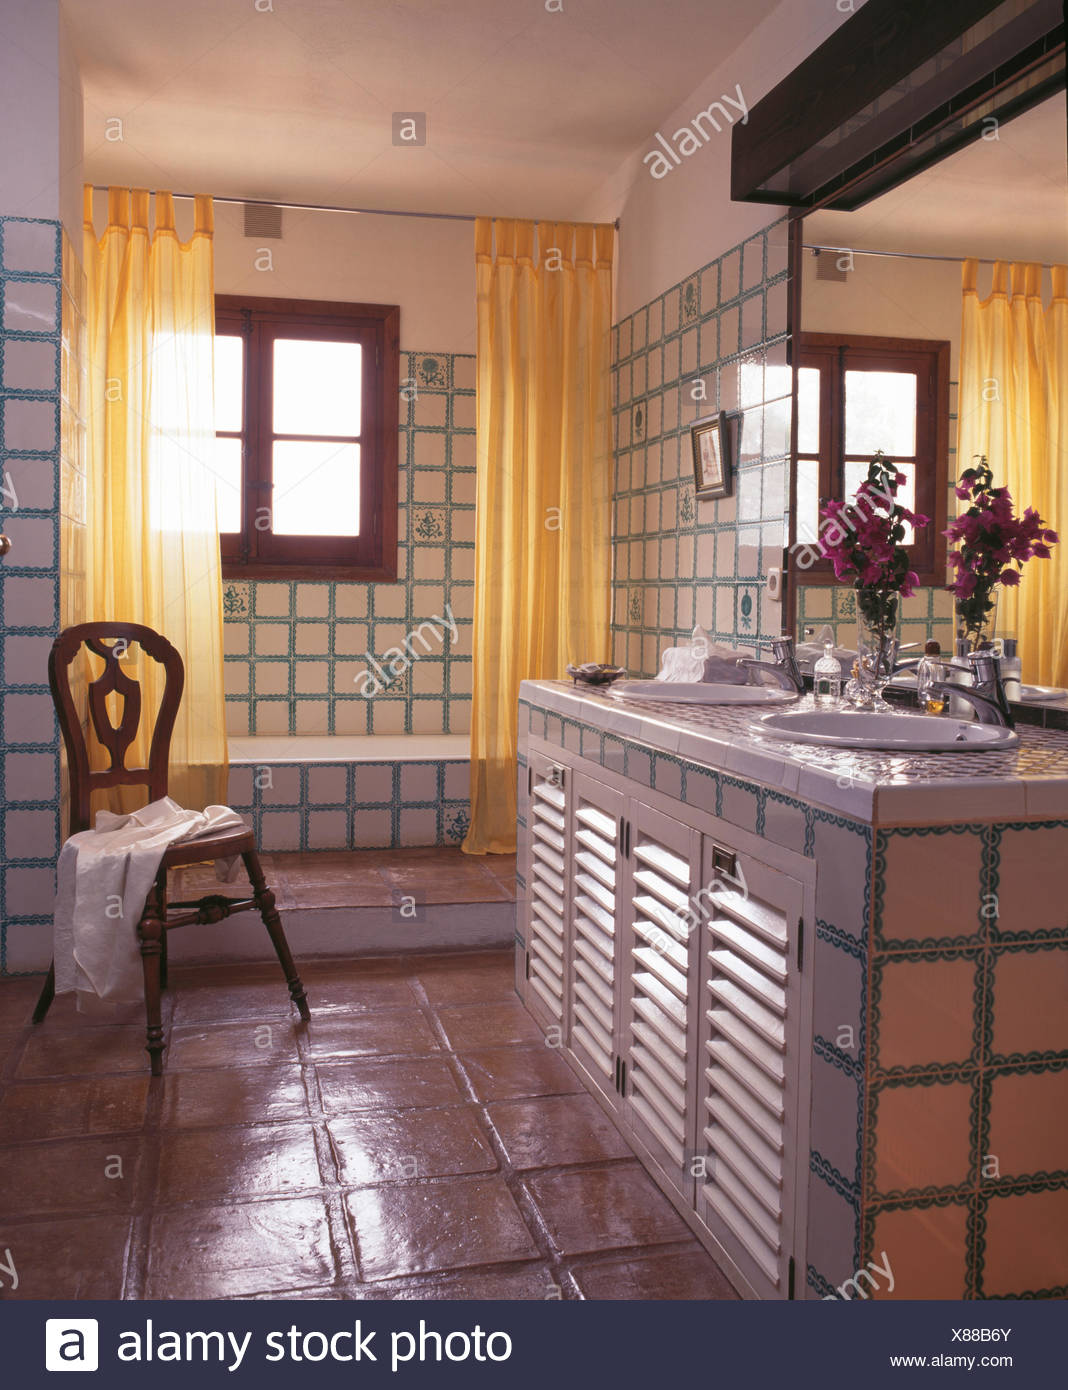 Bathroom In Spanish Yellow Shower Curtains On Bath In Tiled Spanish Country Bathroom